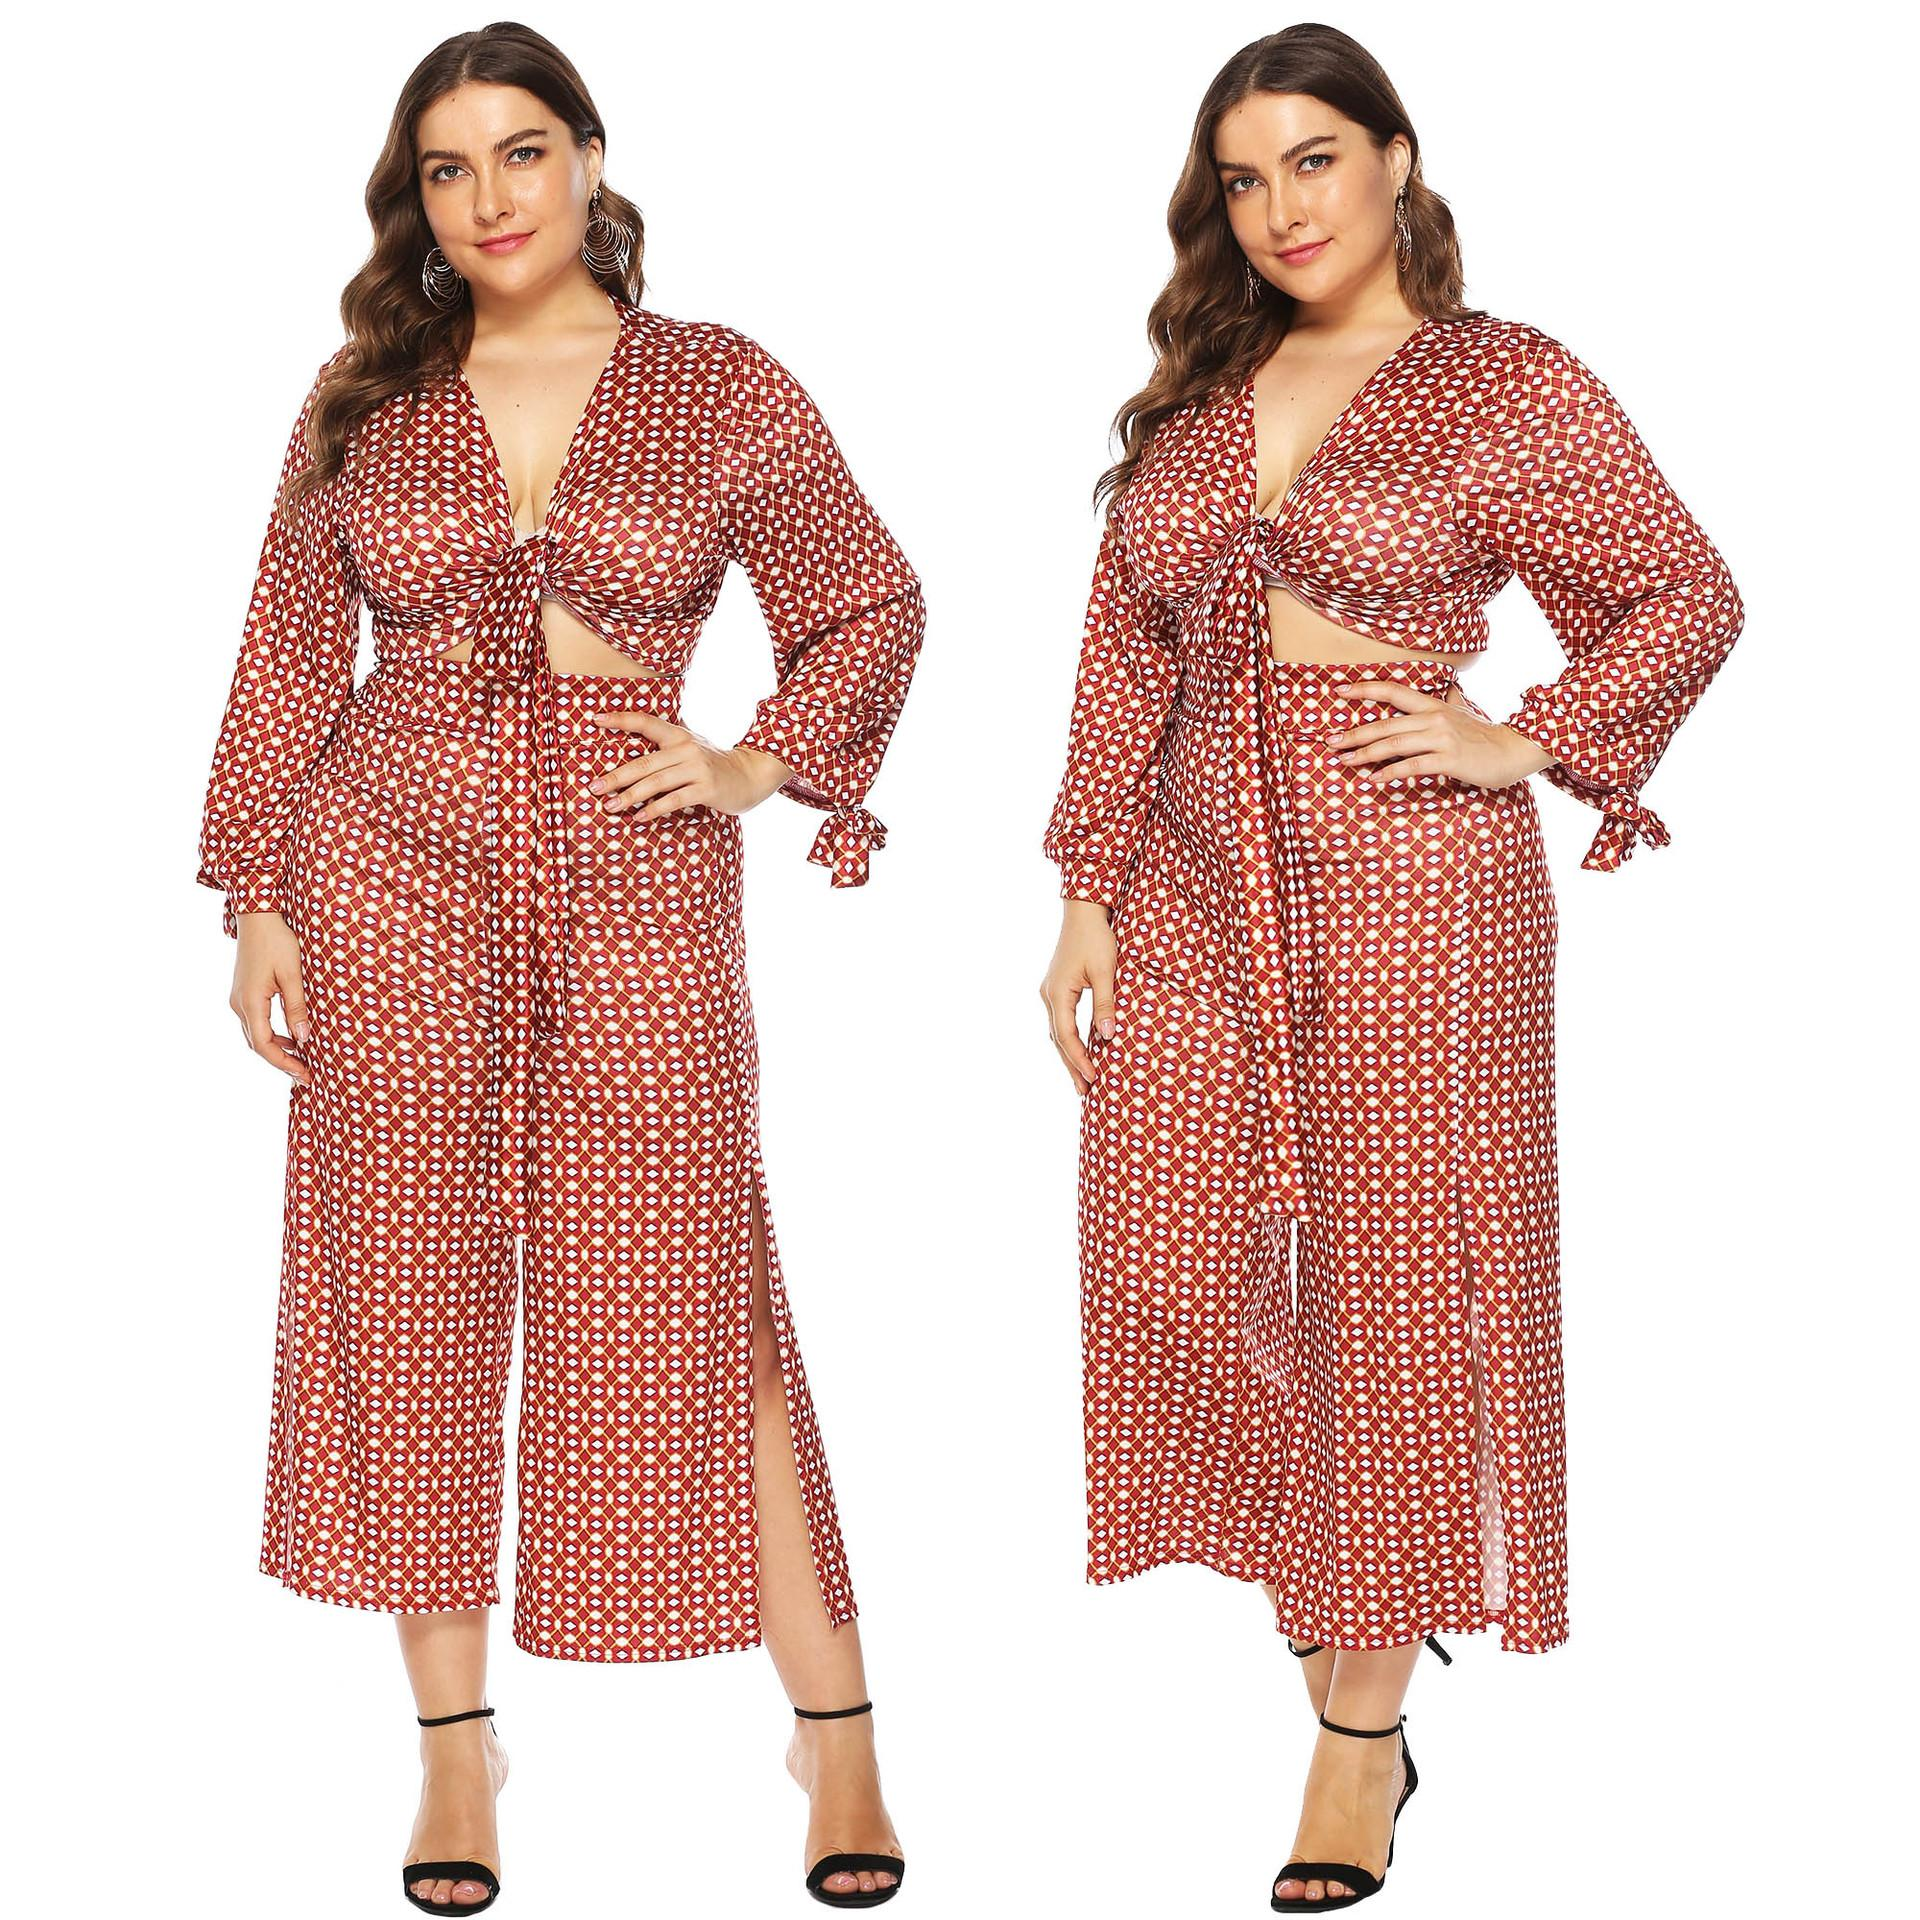 L-4XL Dot Printed Tops+slit Pants Long Sleeve Womens Two Piece Set Fashion Casual Plus Size Ladies Suits